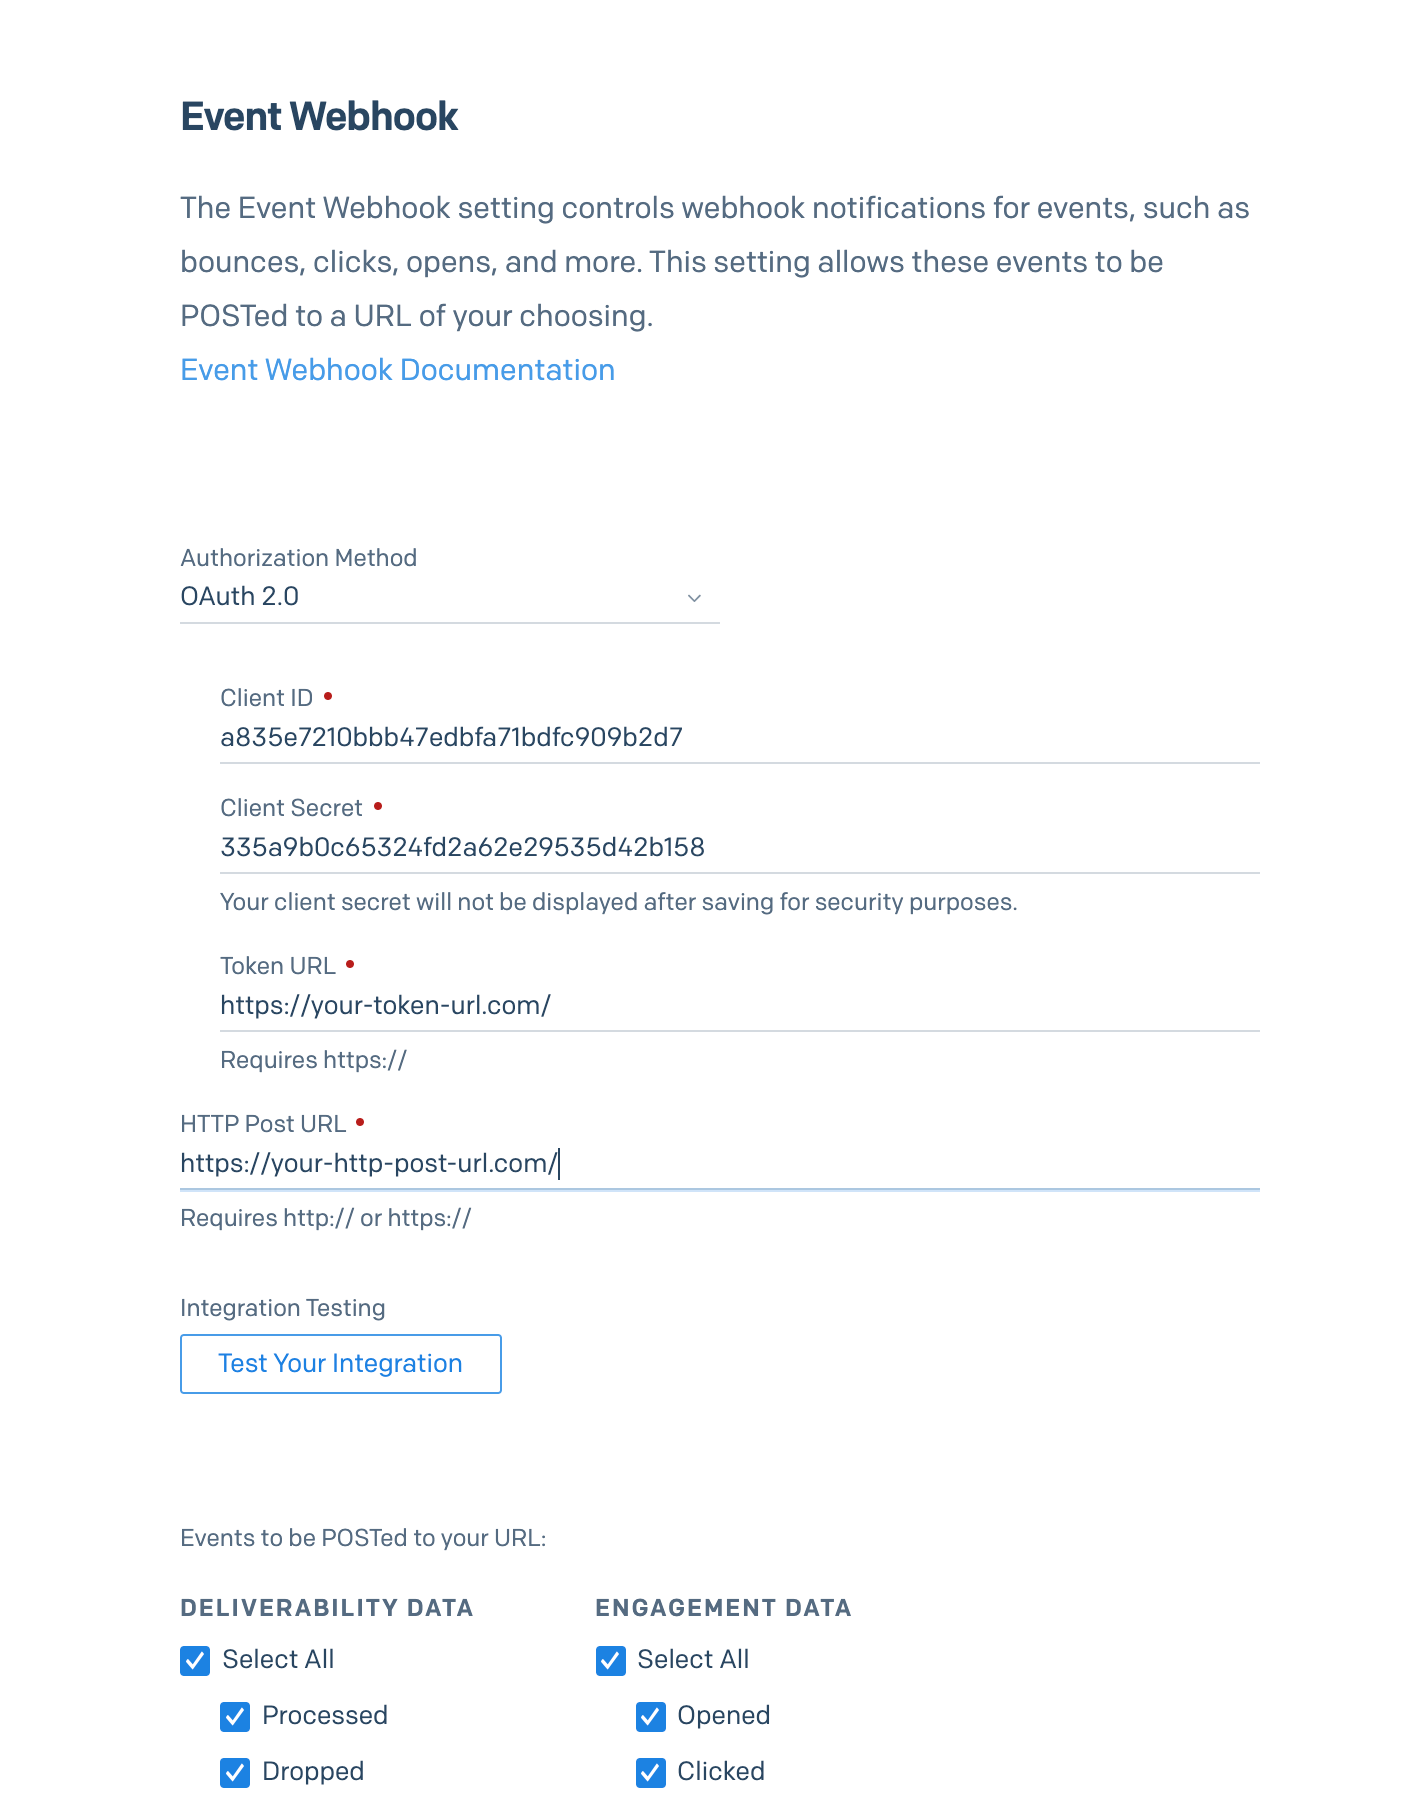 A sidebar modal with all the required fields for enabling OAuth 2.0 for the Event Webhook